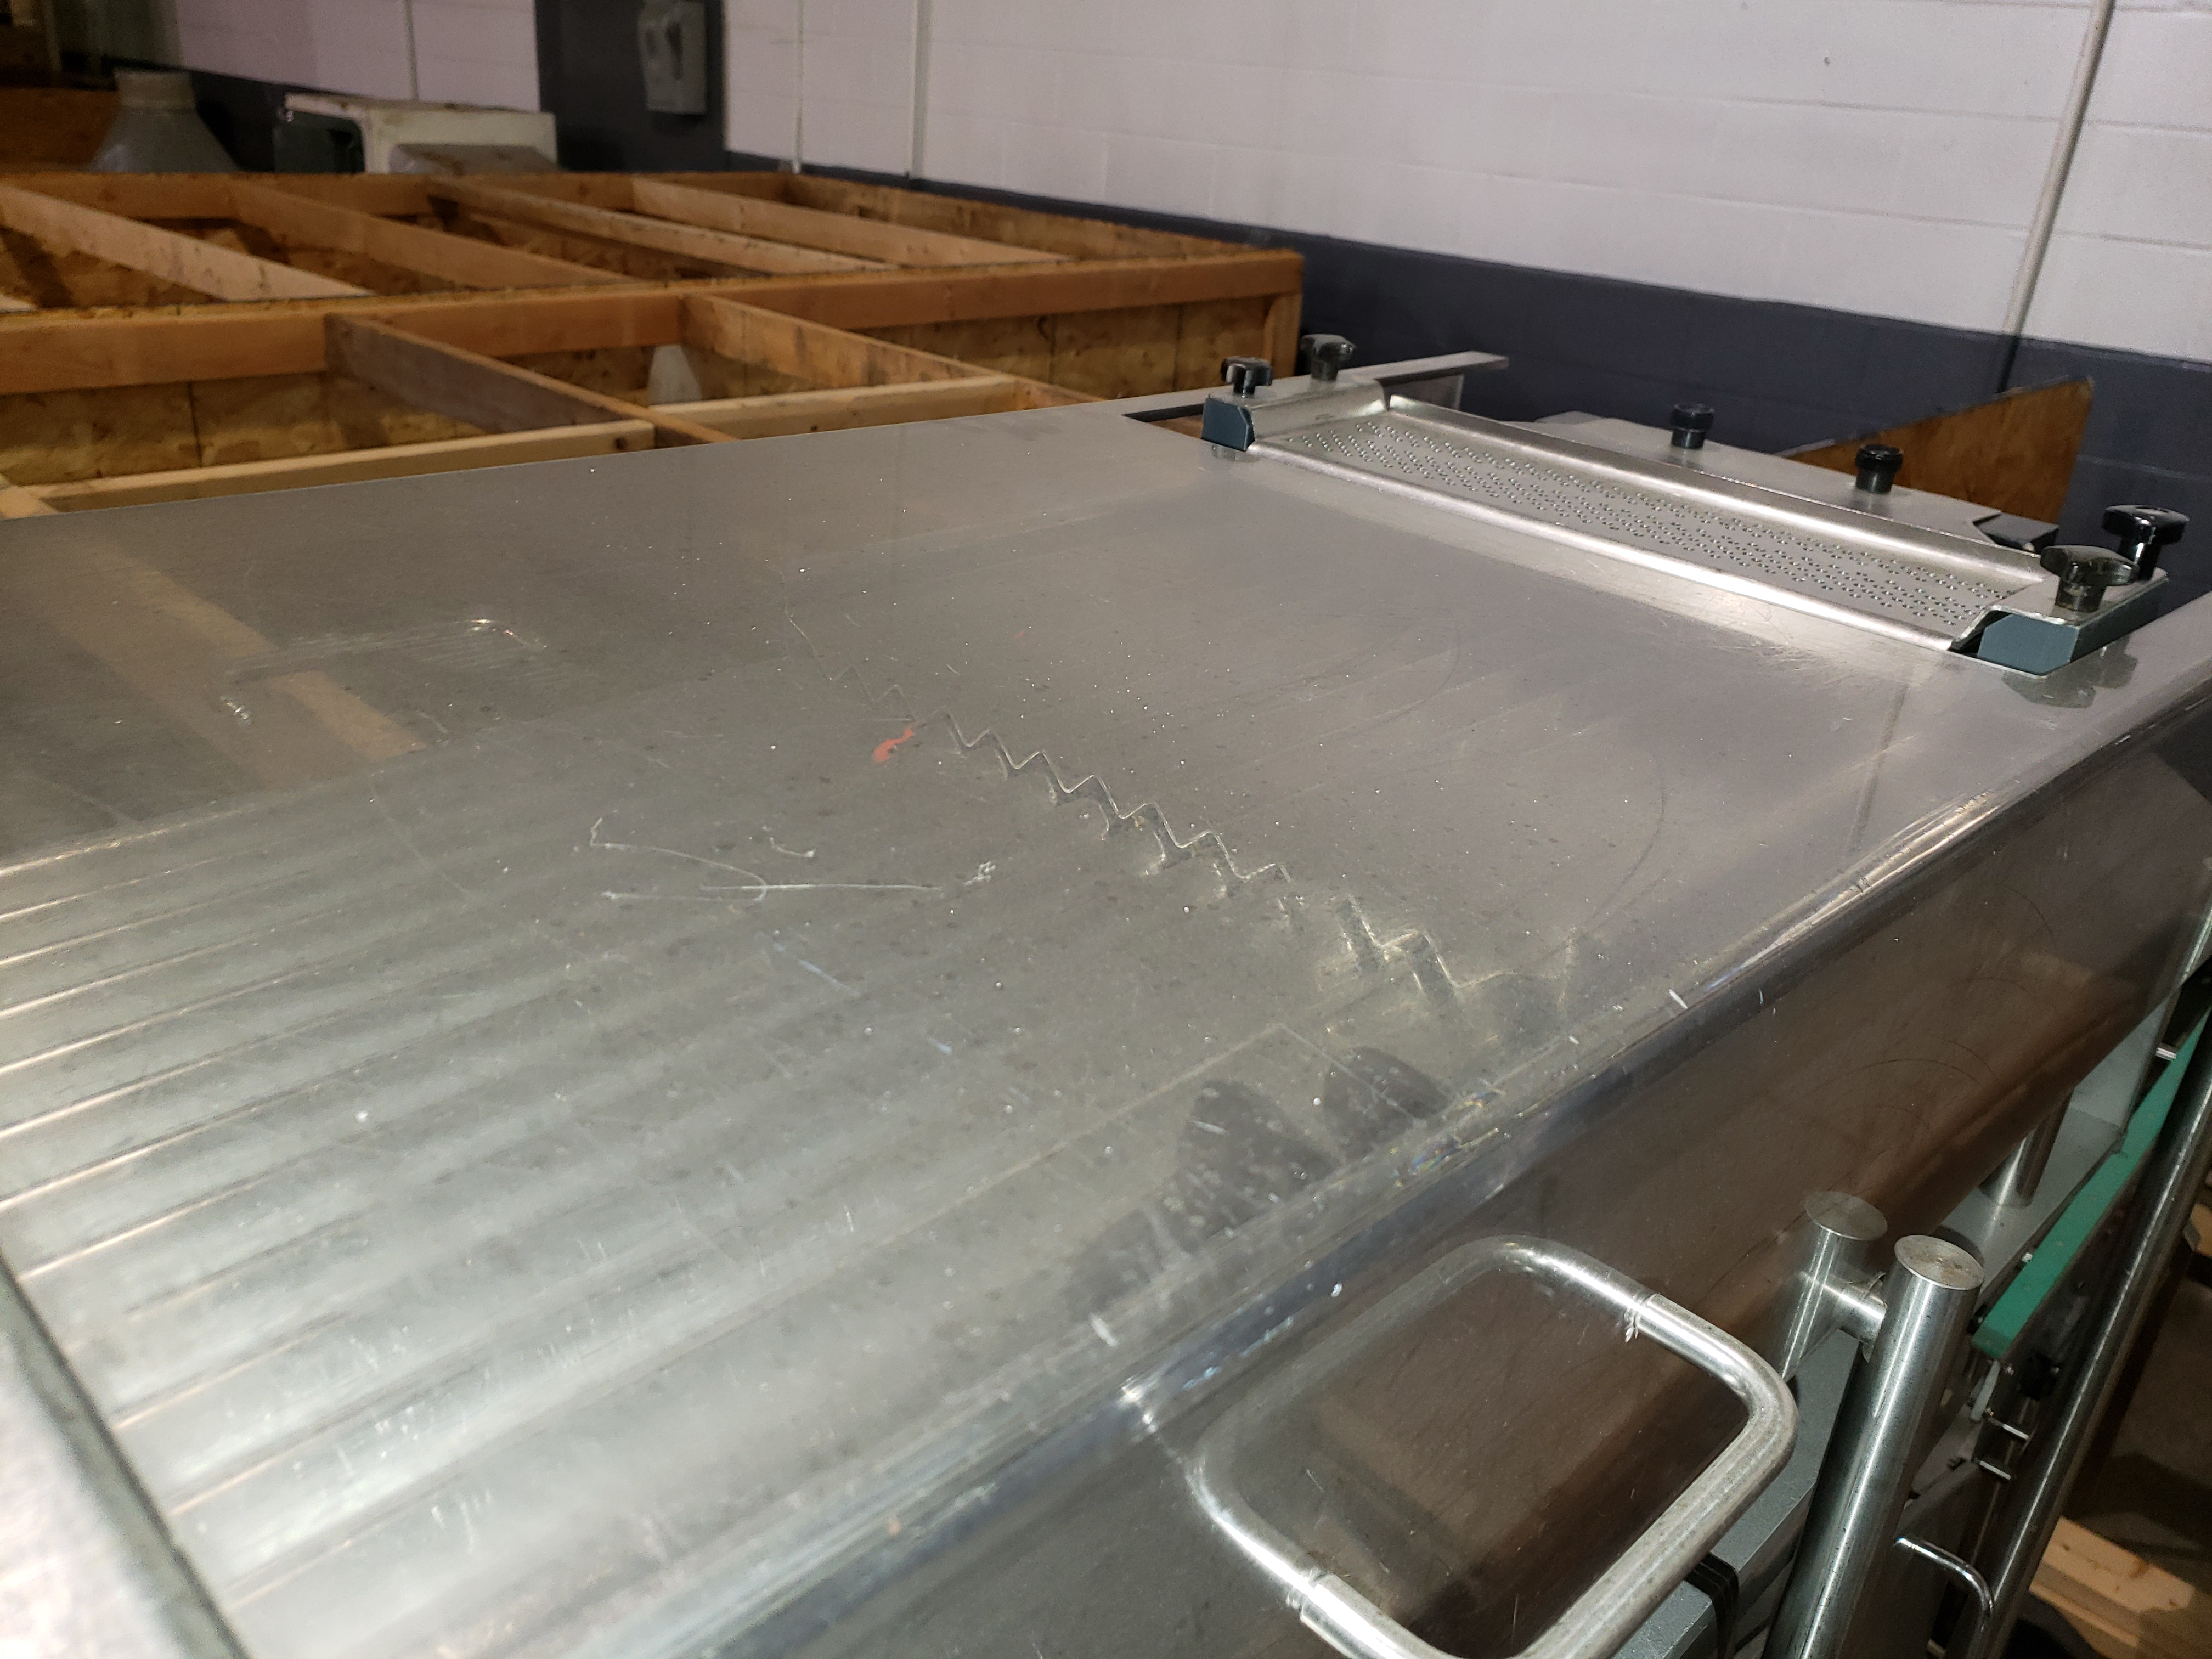 Swiftpack lane counter, model SPC12P, stainless steel product contact surfaces, 12 lane, 2 - Image 6 of 6